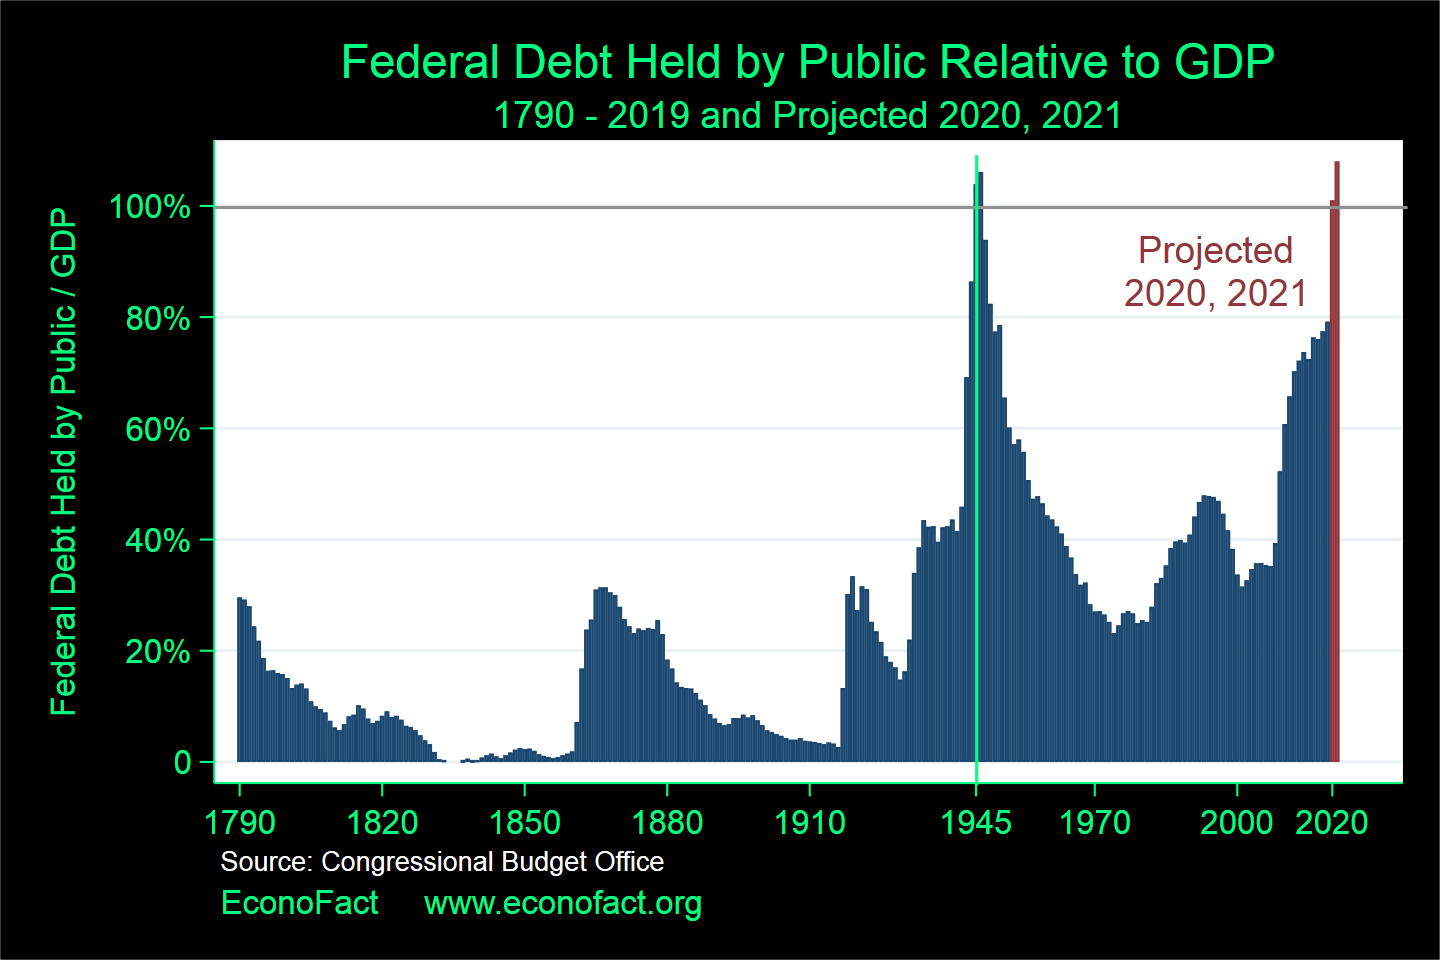 (How) Will We Pay Back the Federal Debt?